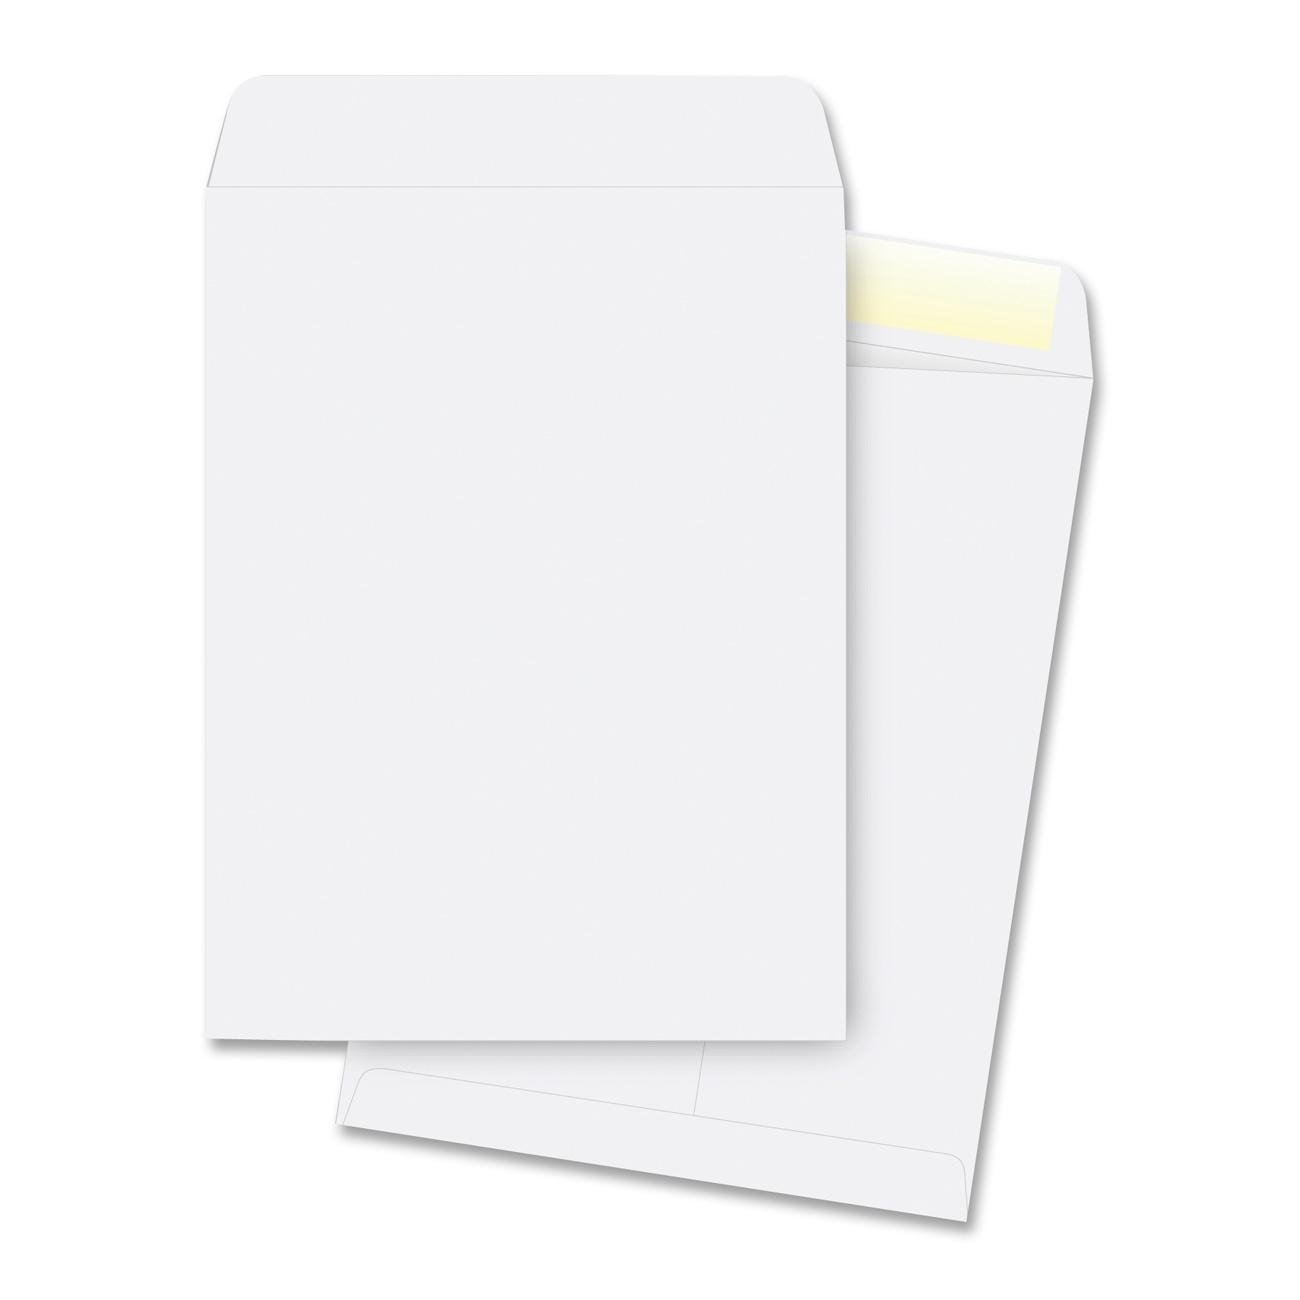 Catalog Envelopes, Plain, 28 Lbs, 9-1/2'x12-1/2'', 250 per Pack, White by Business Source (Image #1)